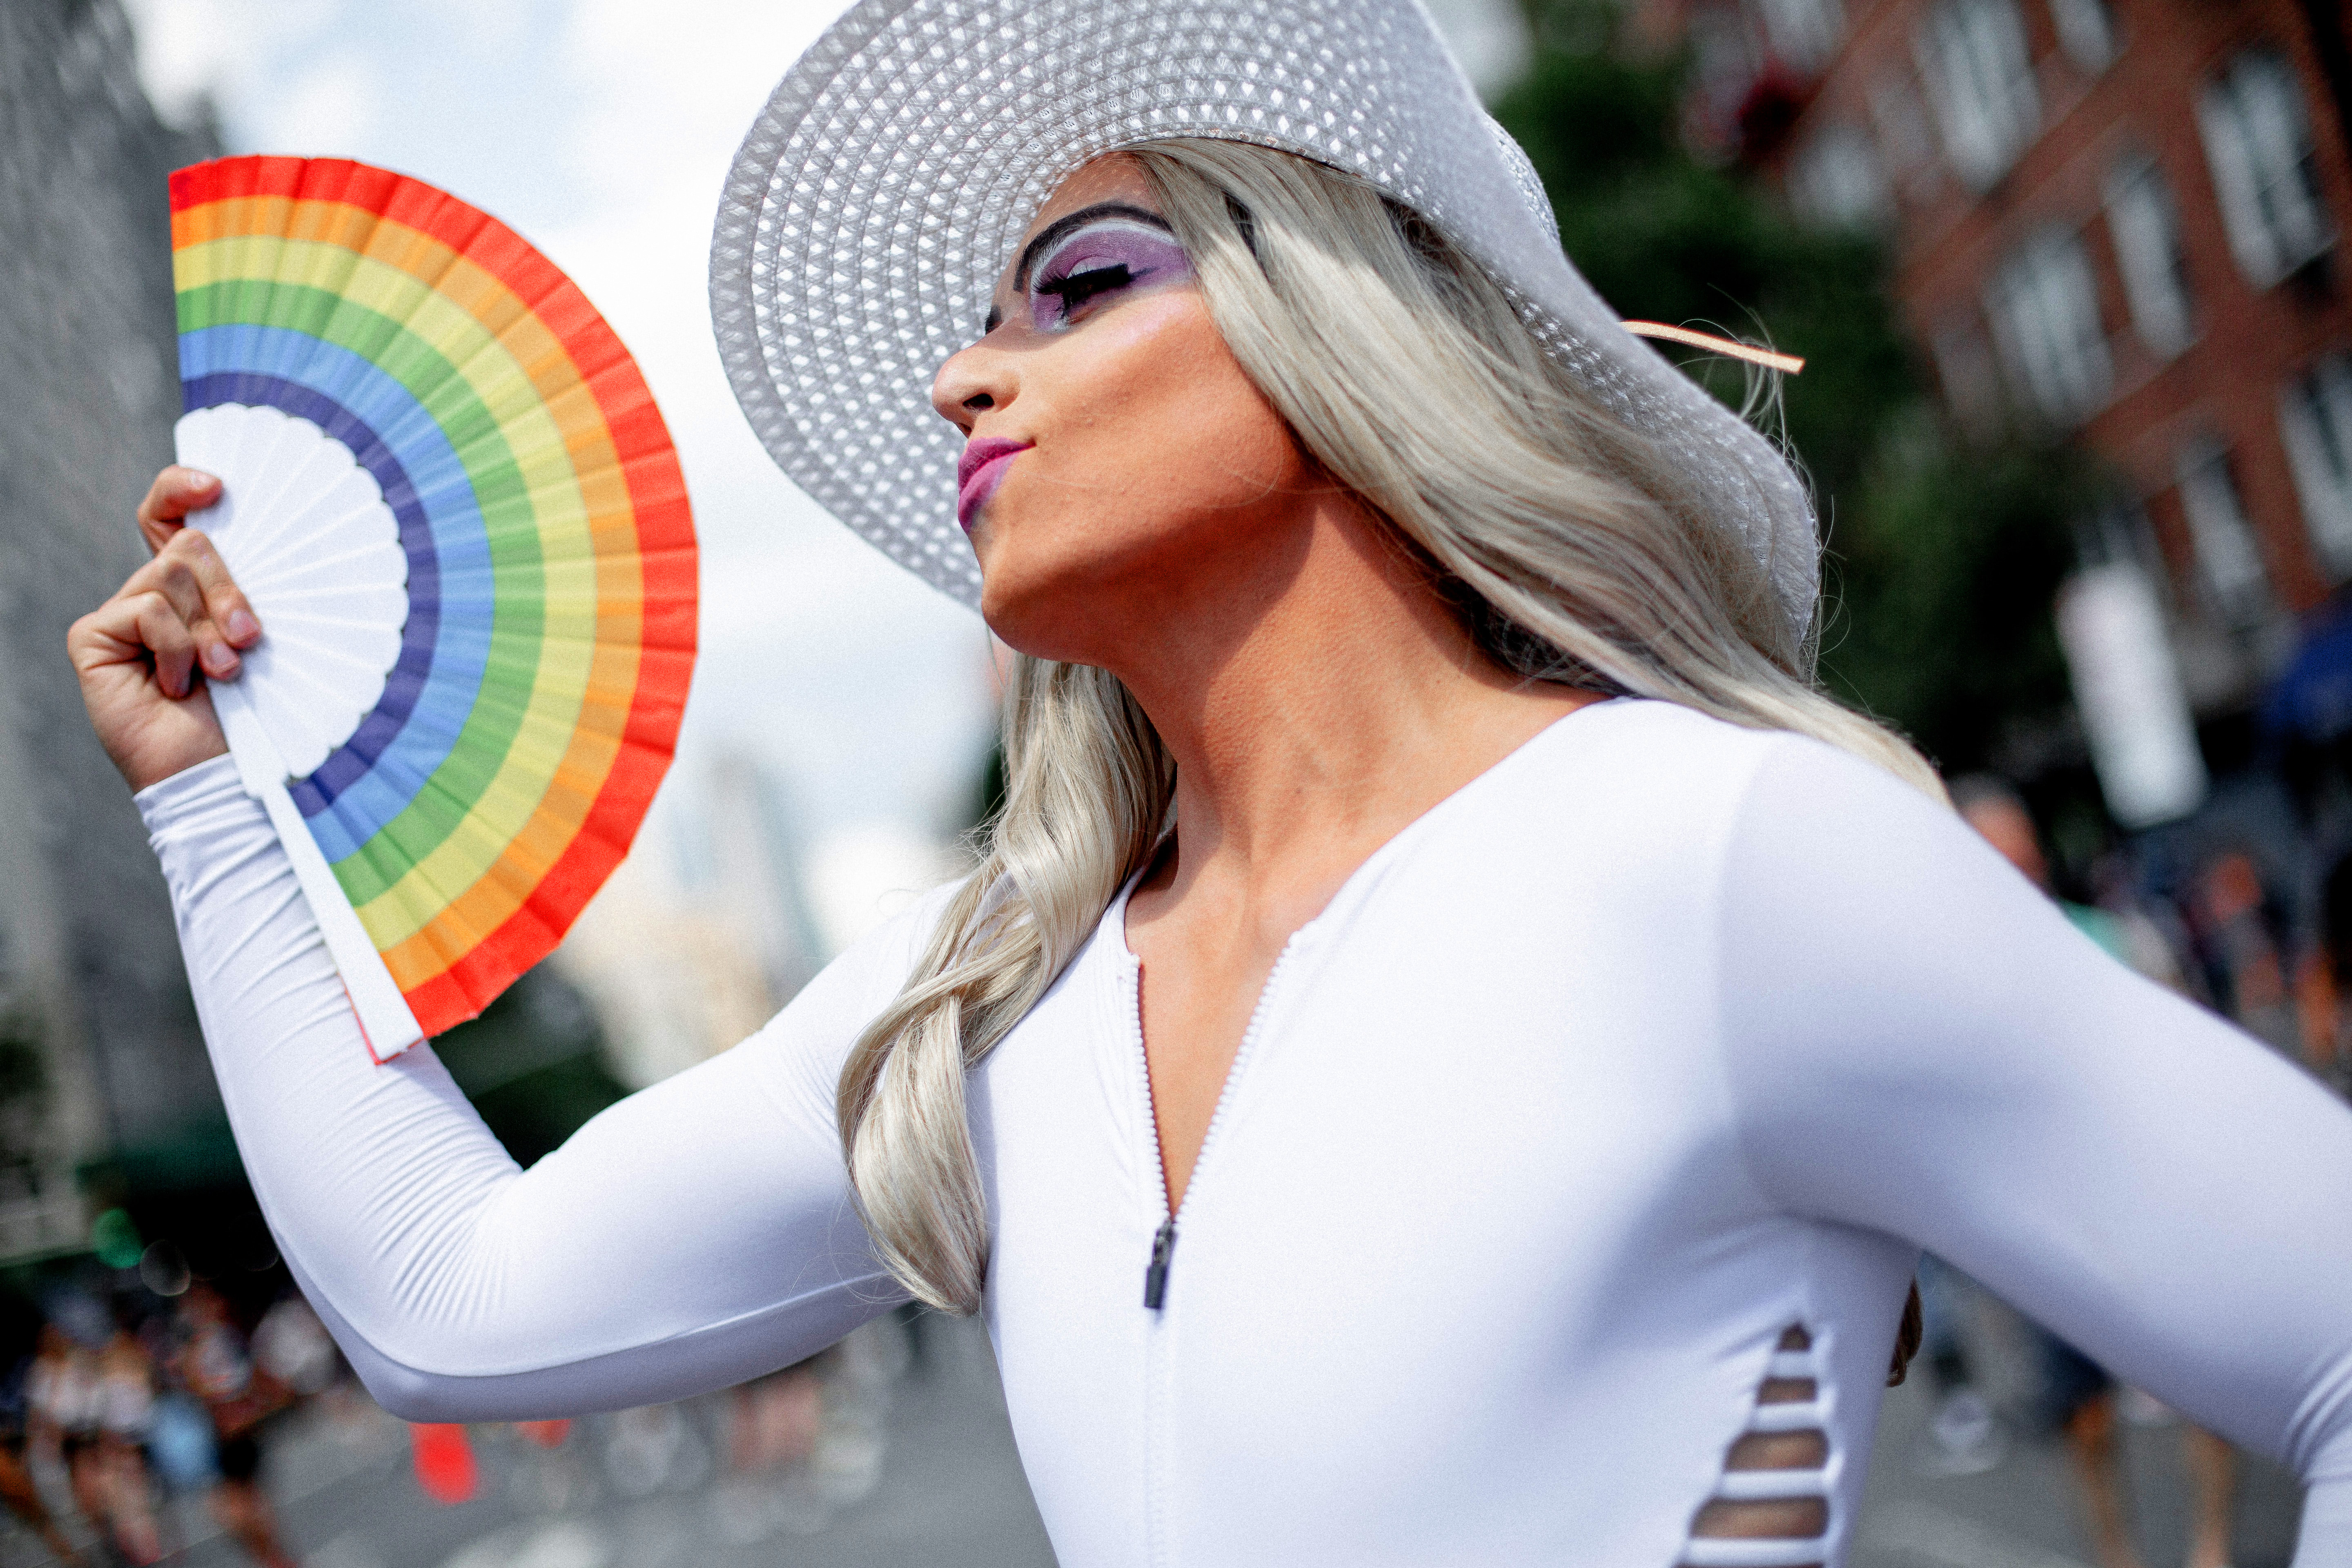 A closeup shot of a woman, wearing a white shirt and a white hat, waving a rainbow Pride fan.